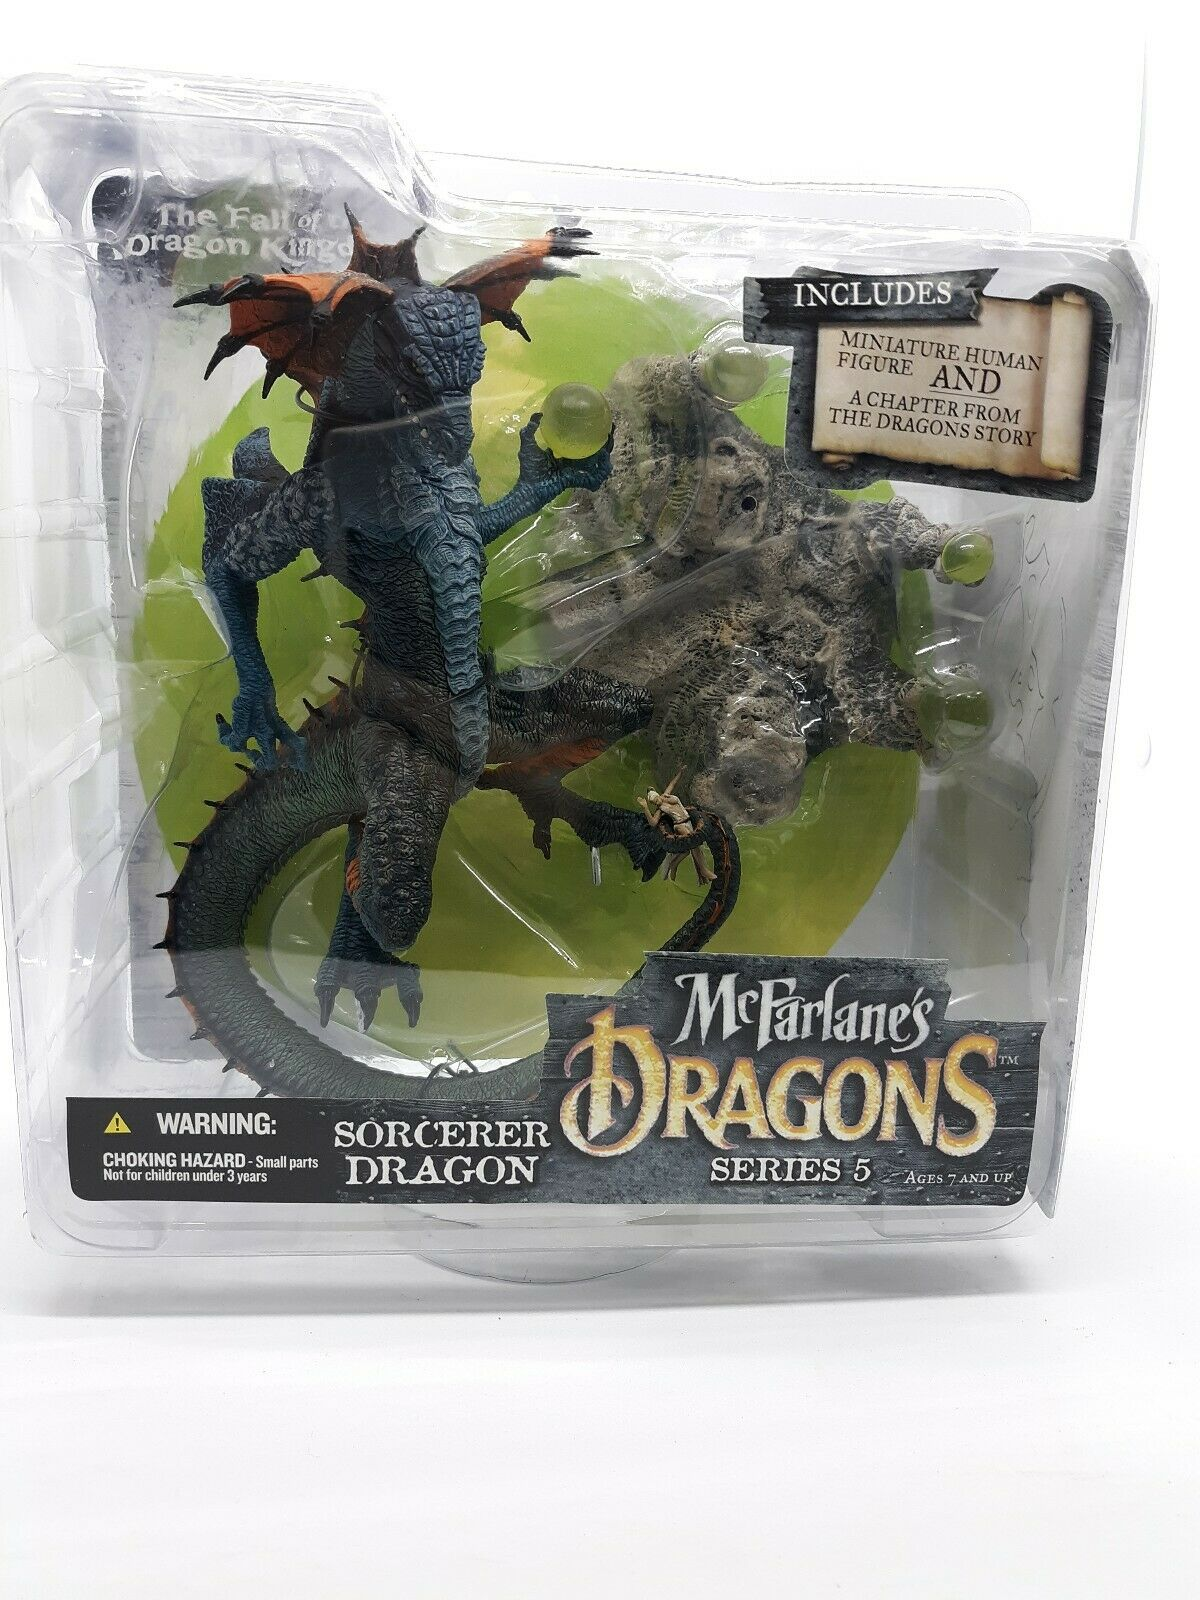 McFarlanes Dragons Sorcerer Dragon Series 5  The Ftutti of the Dragon rossoom A25  sconto online